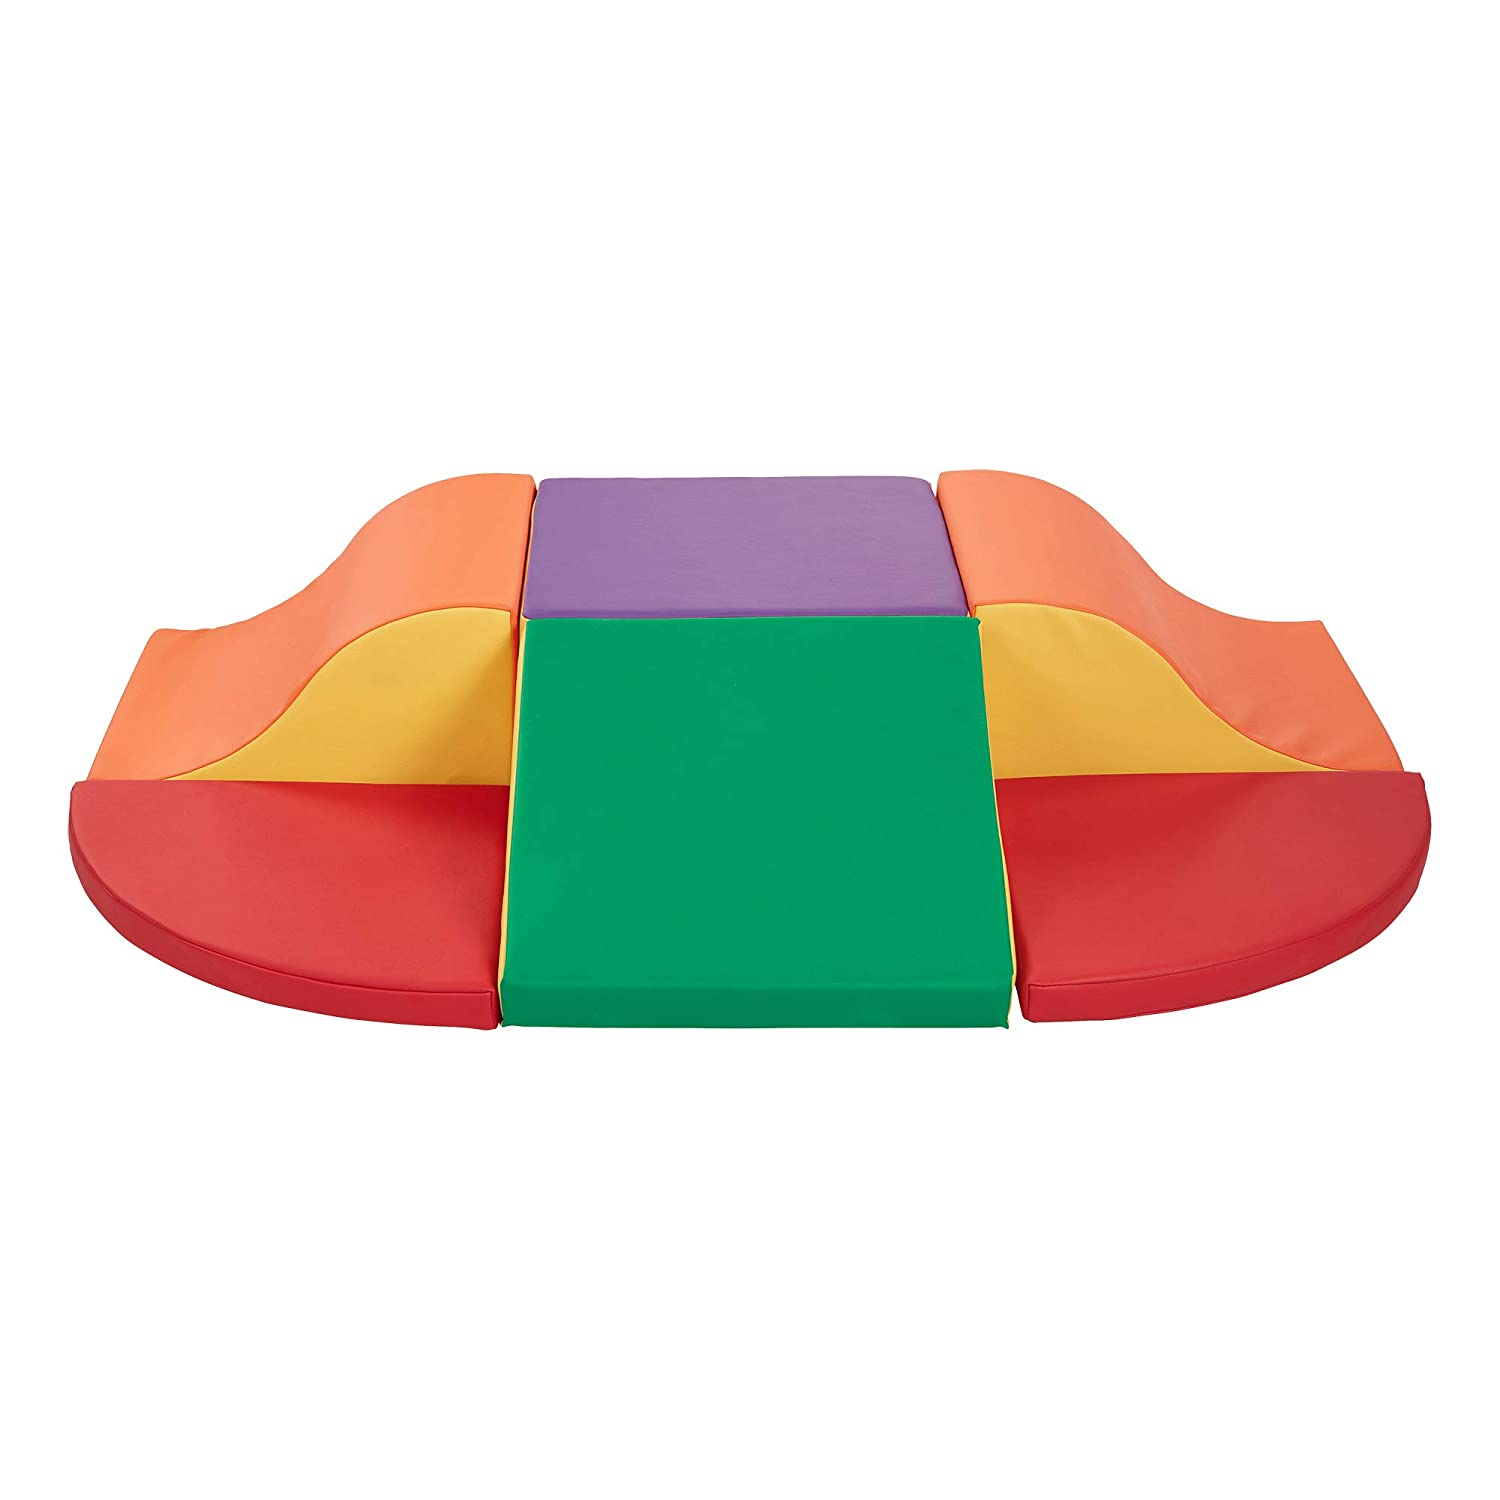 Contemporary Assorted Colors Sprogs Indoor Active Play Soft Foam Super Crawl and Slide Climber for Toddlers and Kids